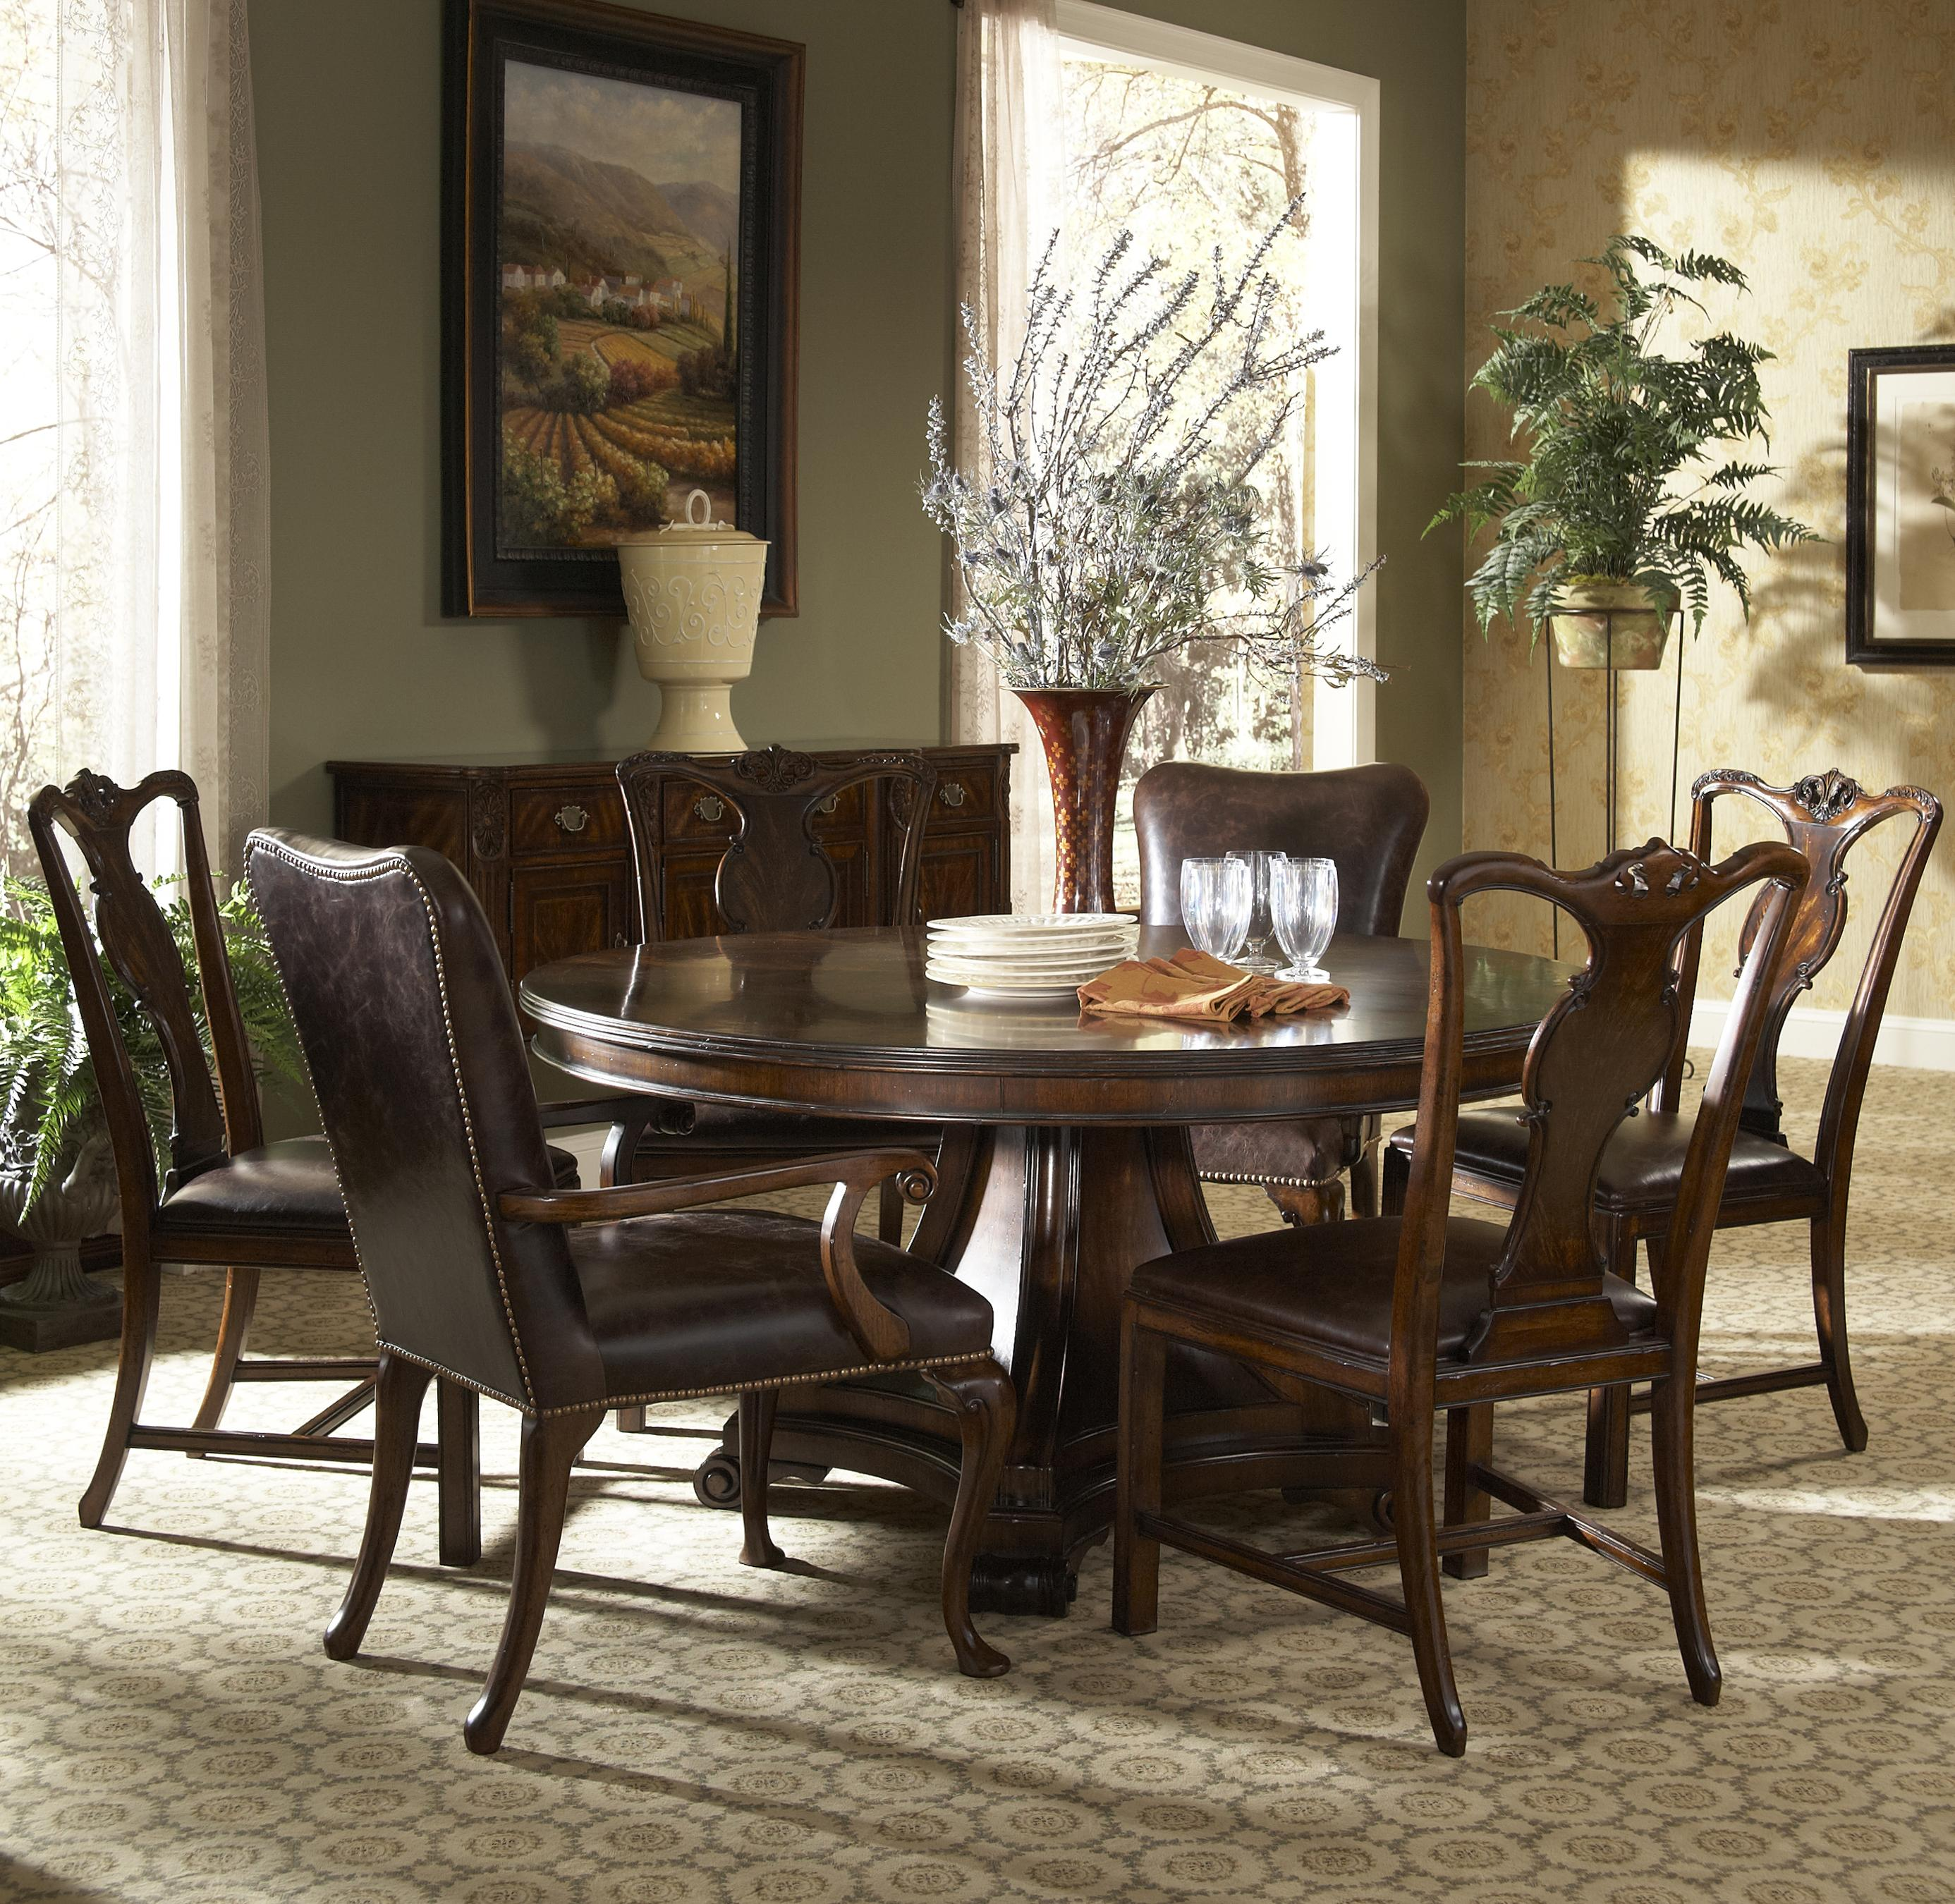 7 Piece Round Dining Table With Splat Back Side Chairs And Leather Arm